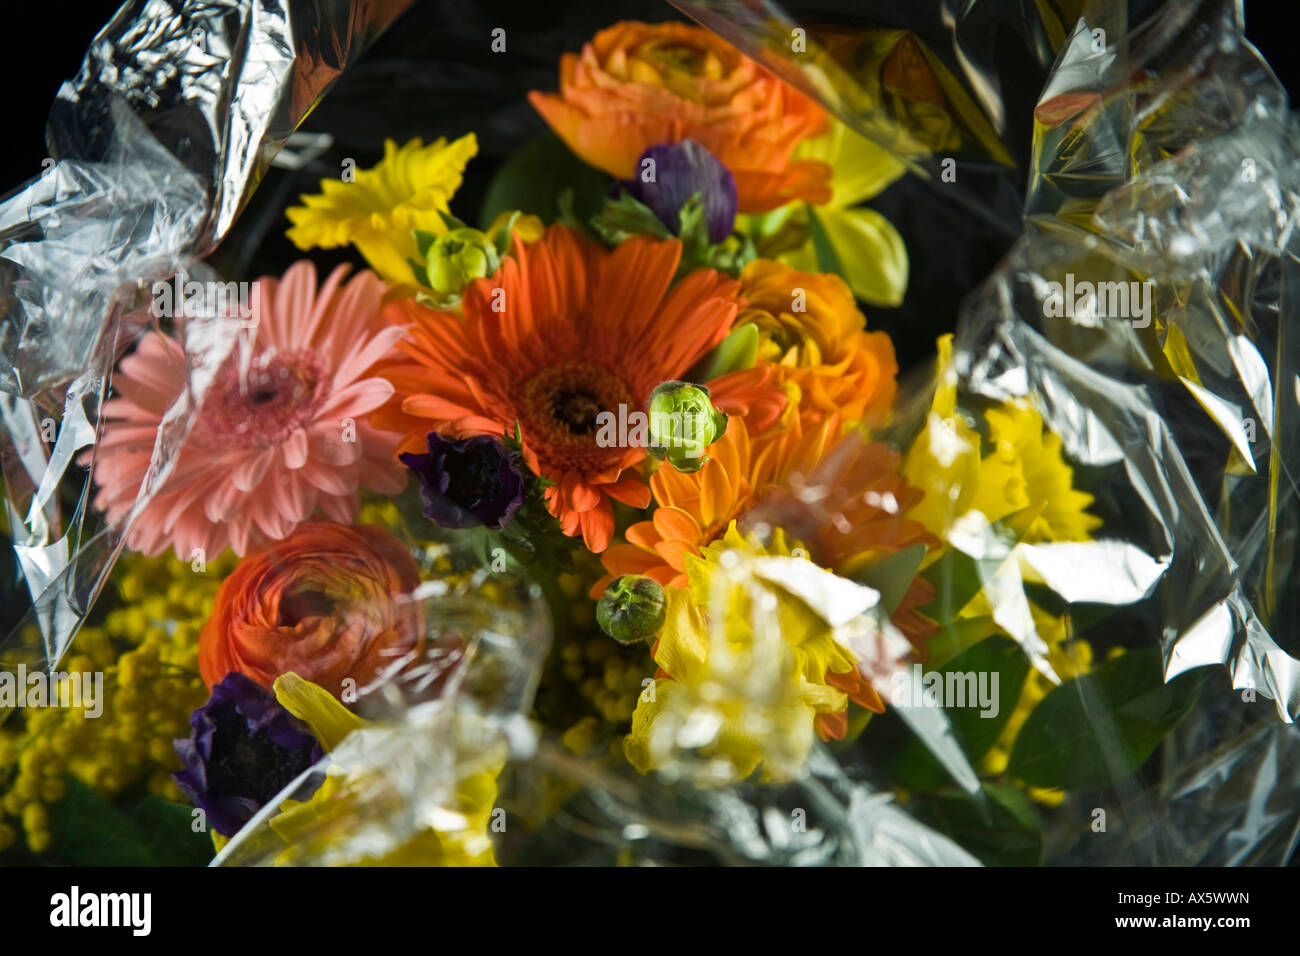 Bouquet of flowers wrapped in cellophane Stock Photo